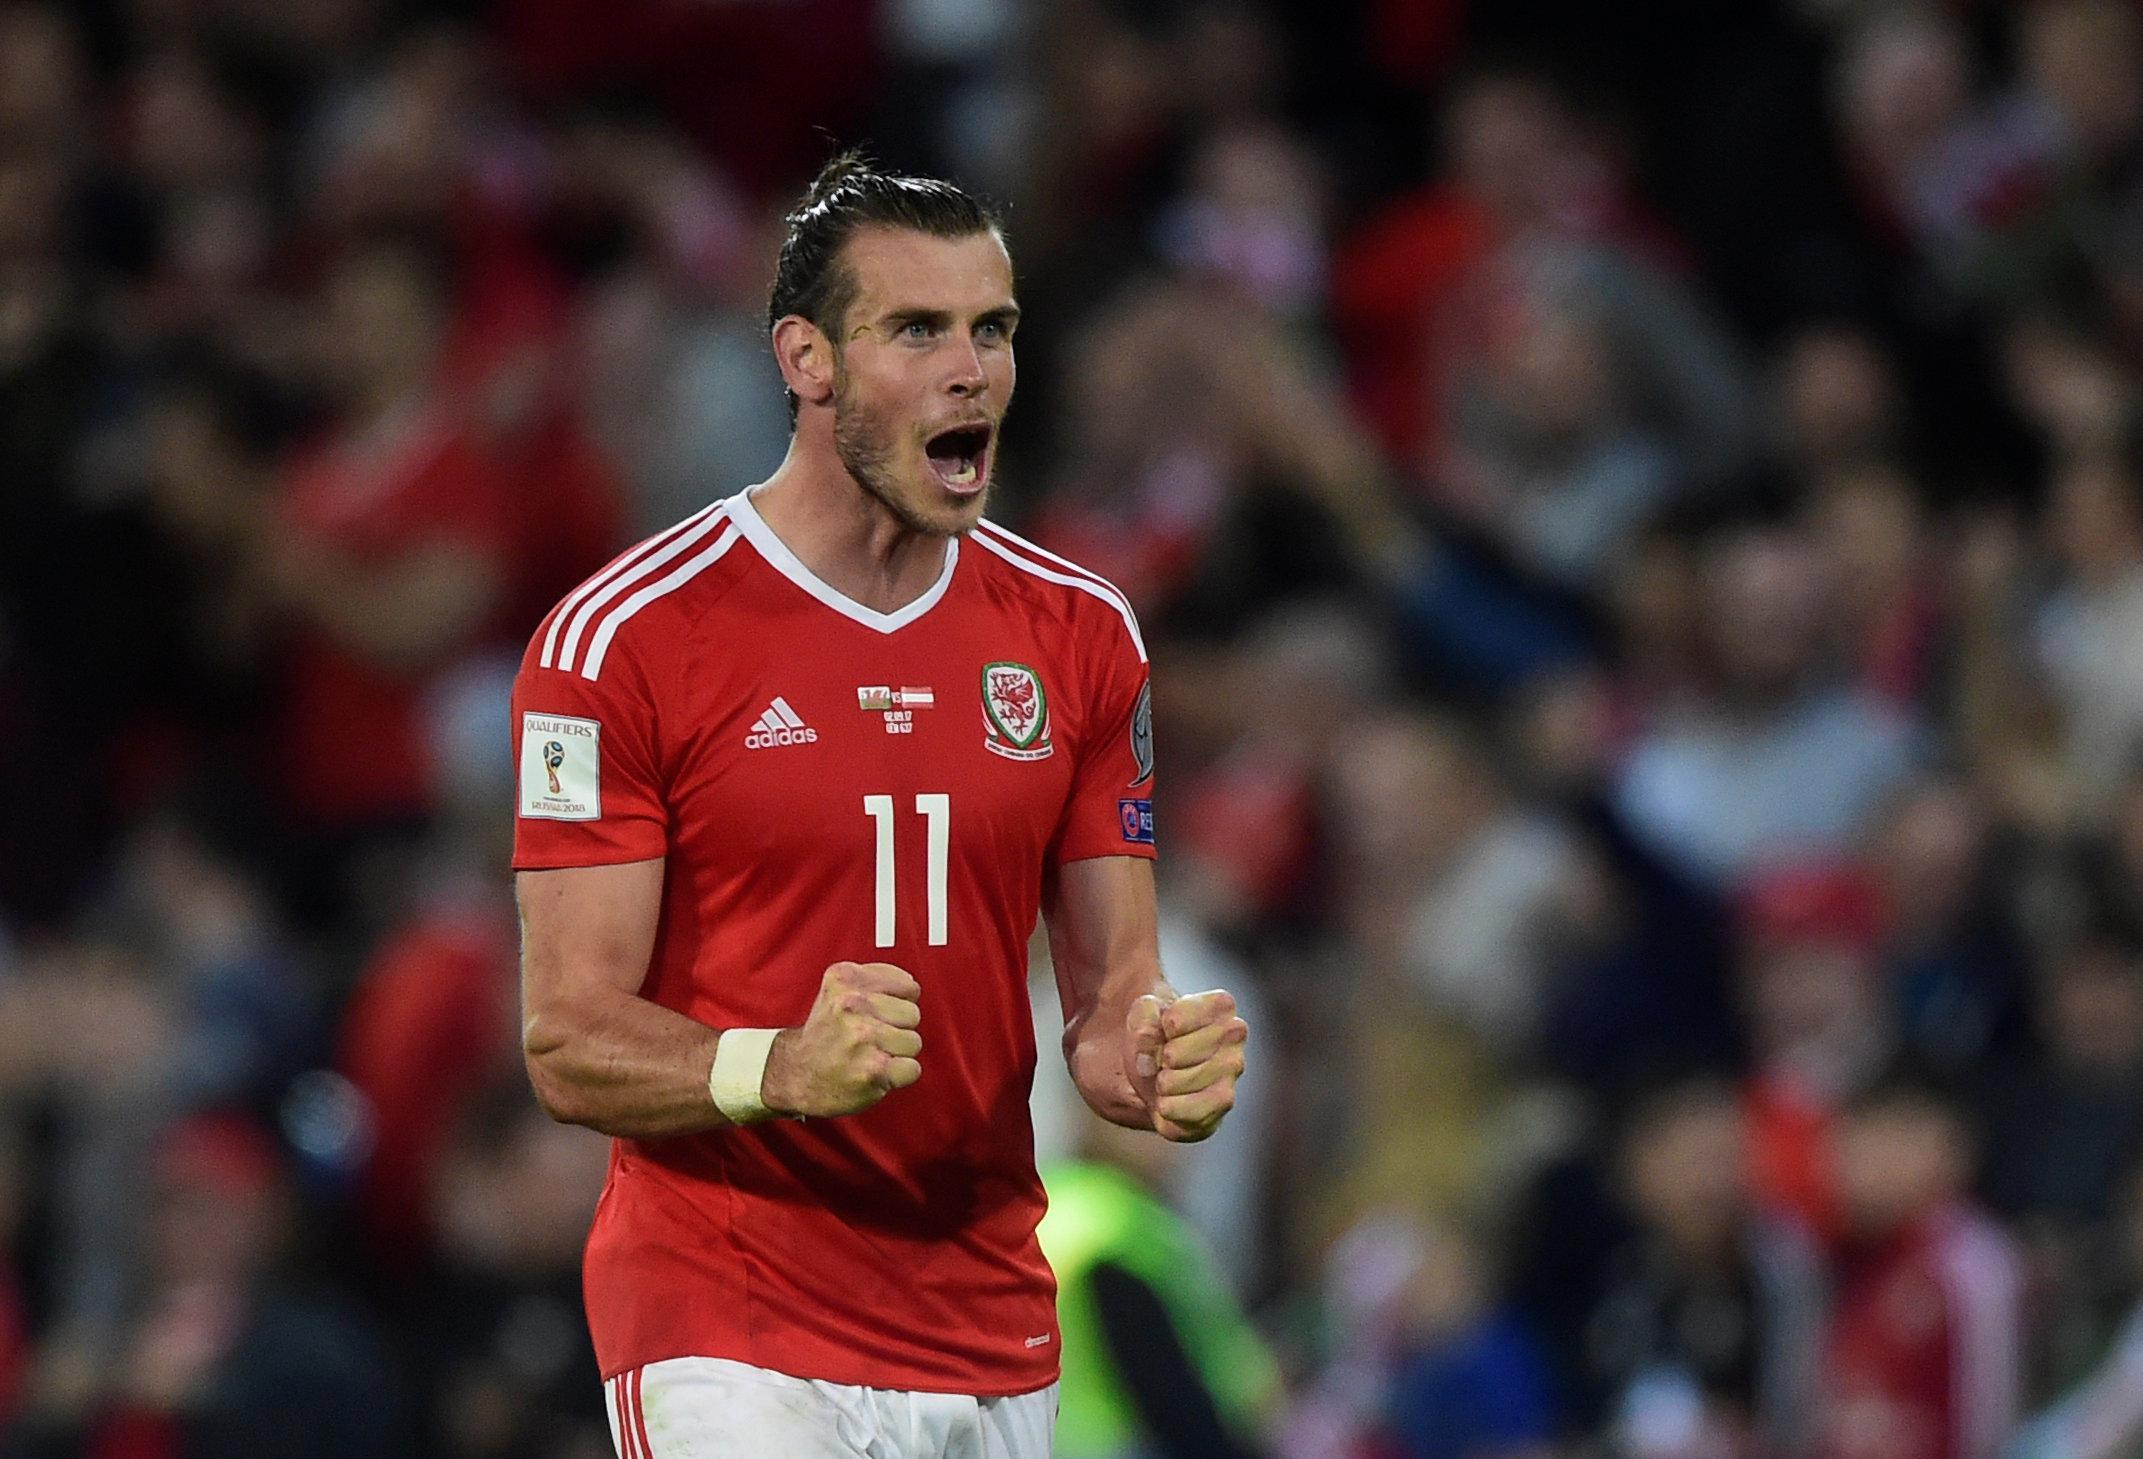 Gareth Bale needs to have a good season at Real to keep his place